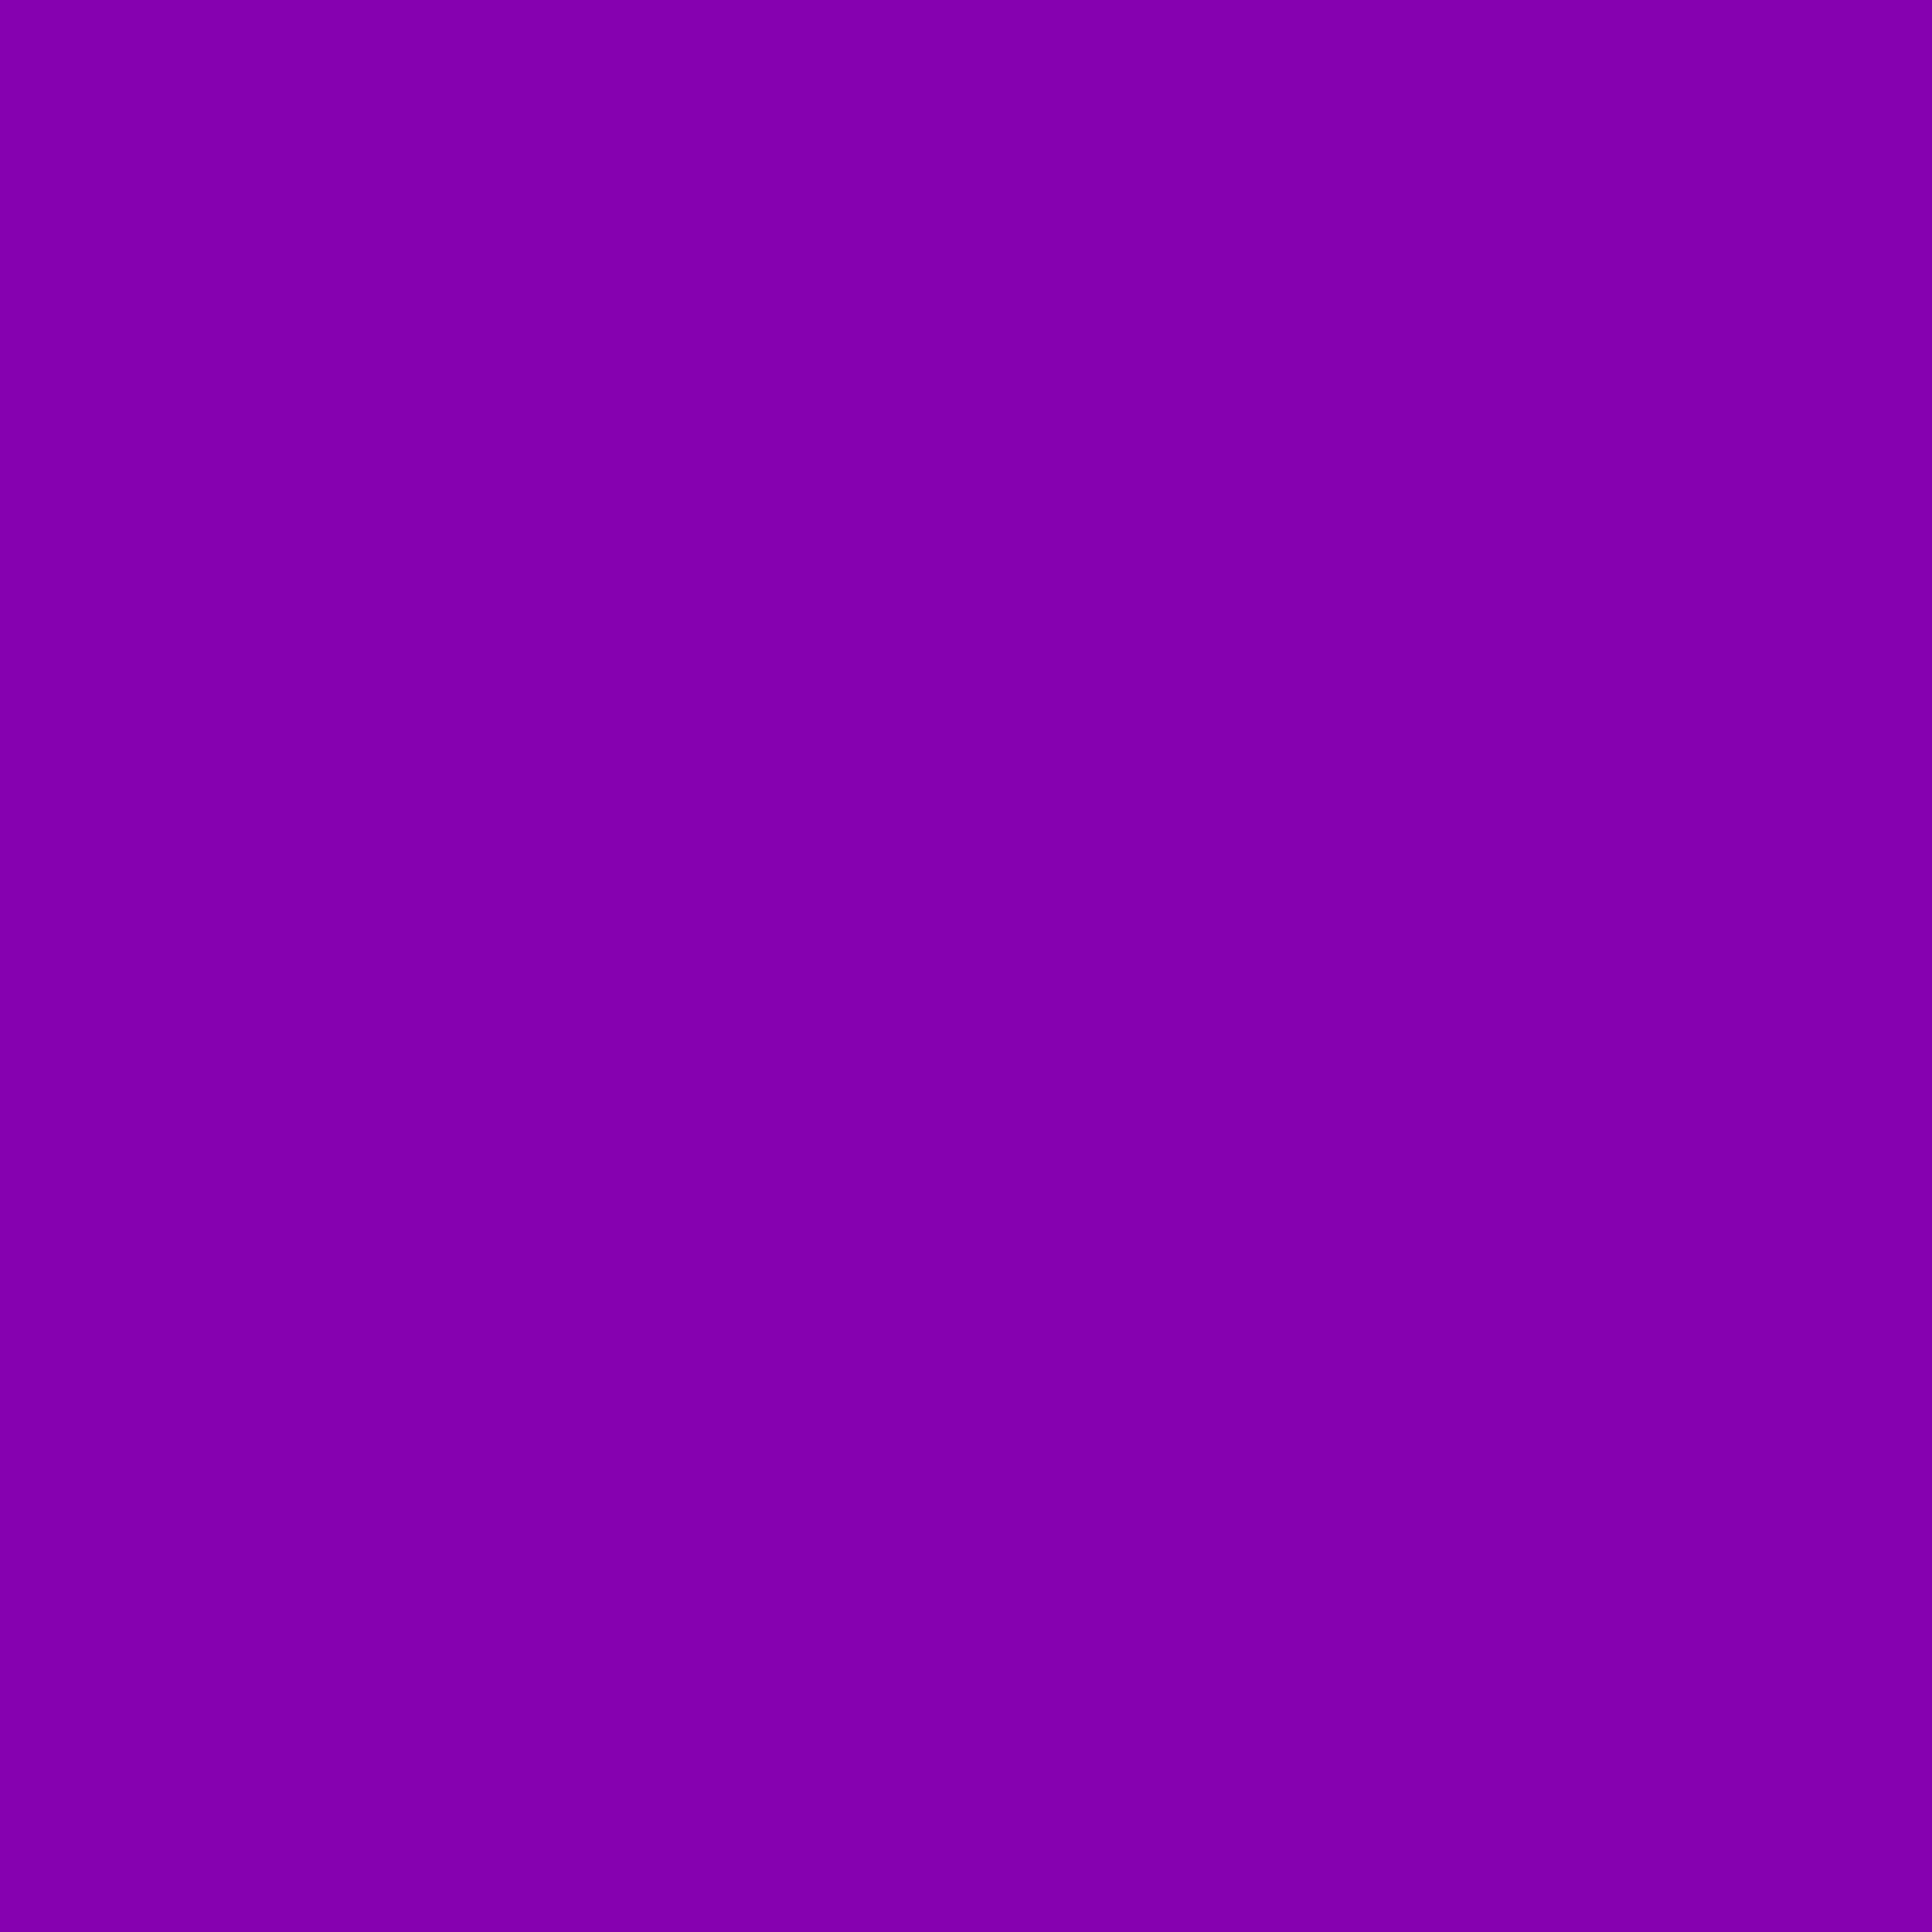 2732x2732 Violet RYB Solid Color Background